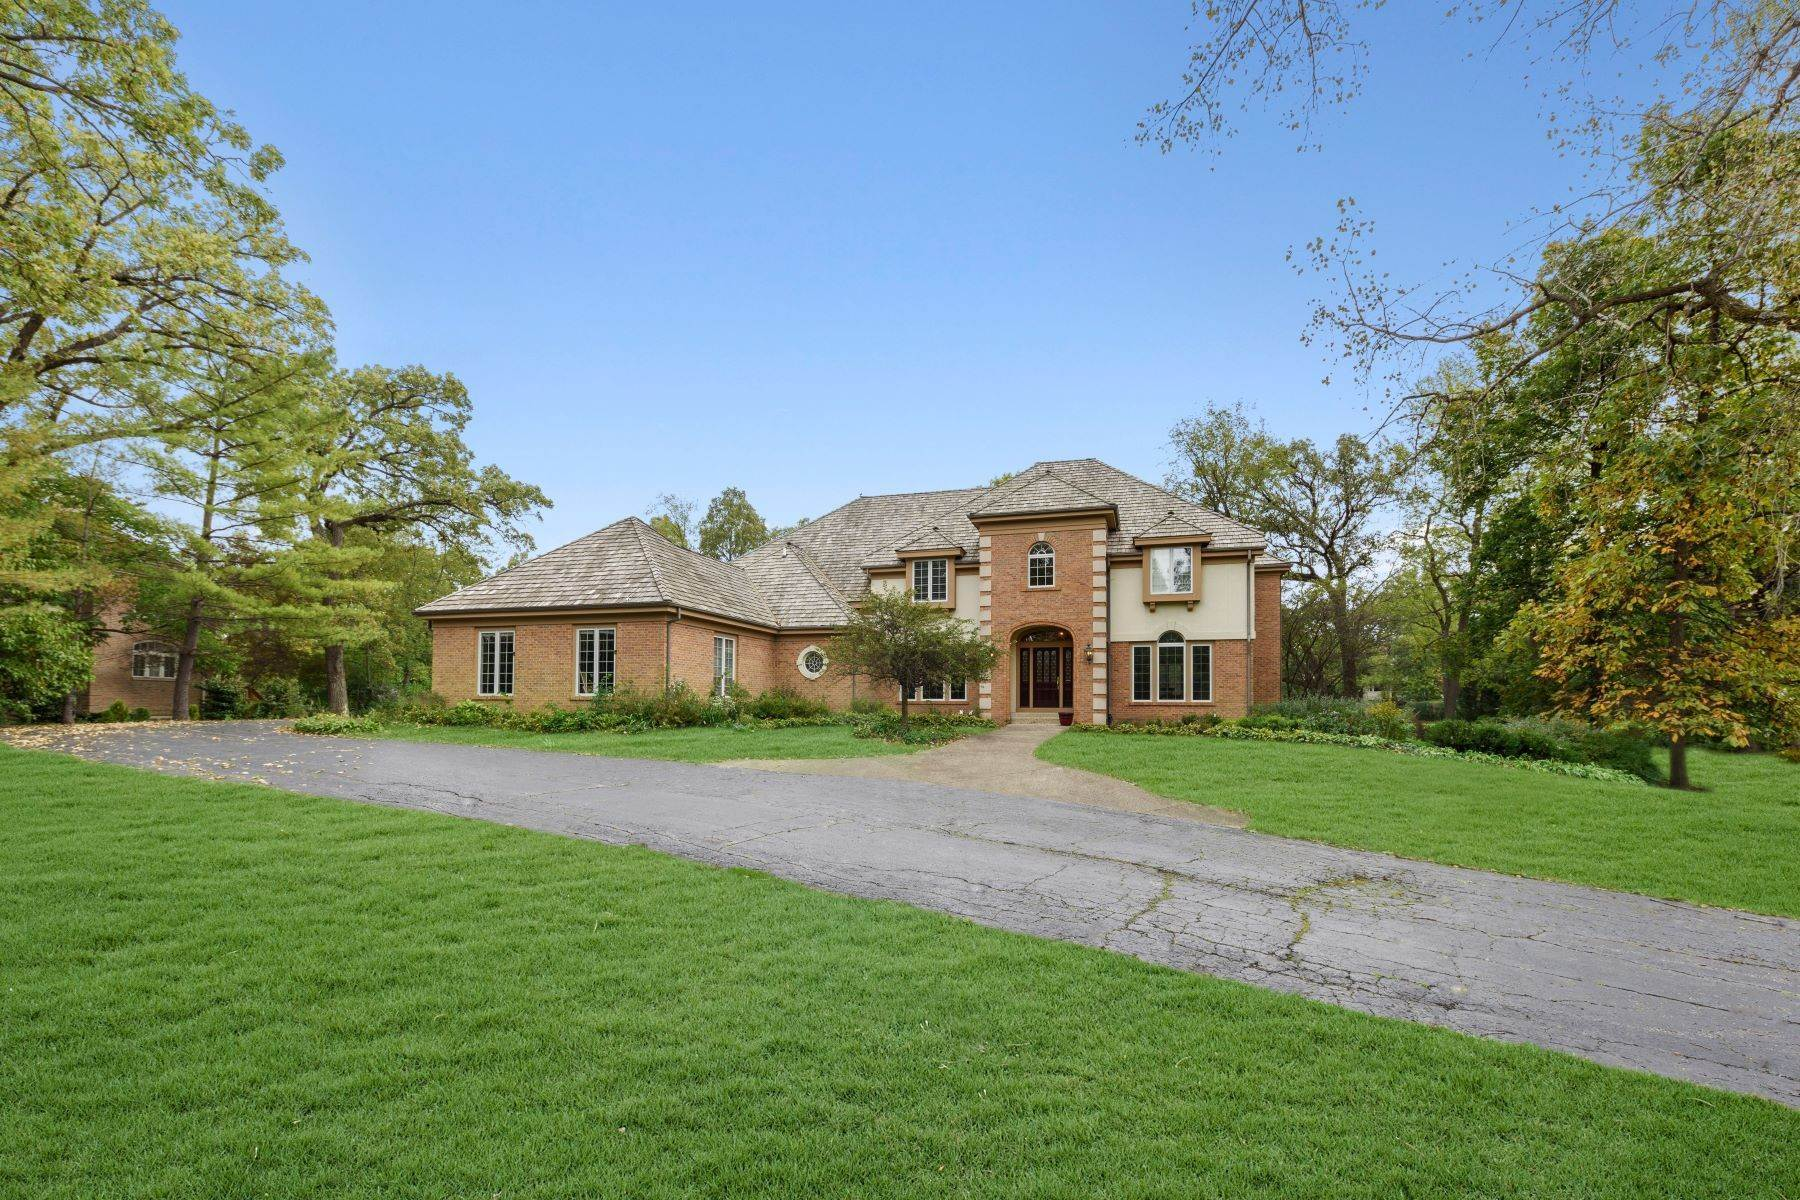 Single Family Homes for Active at Wonderful Views 12 Riderwood Road North Barrington, Illinois 60010 United States